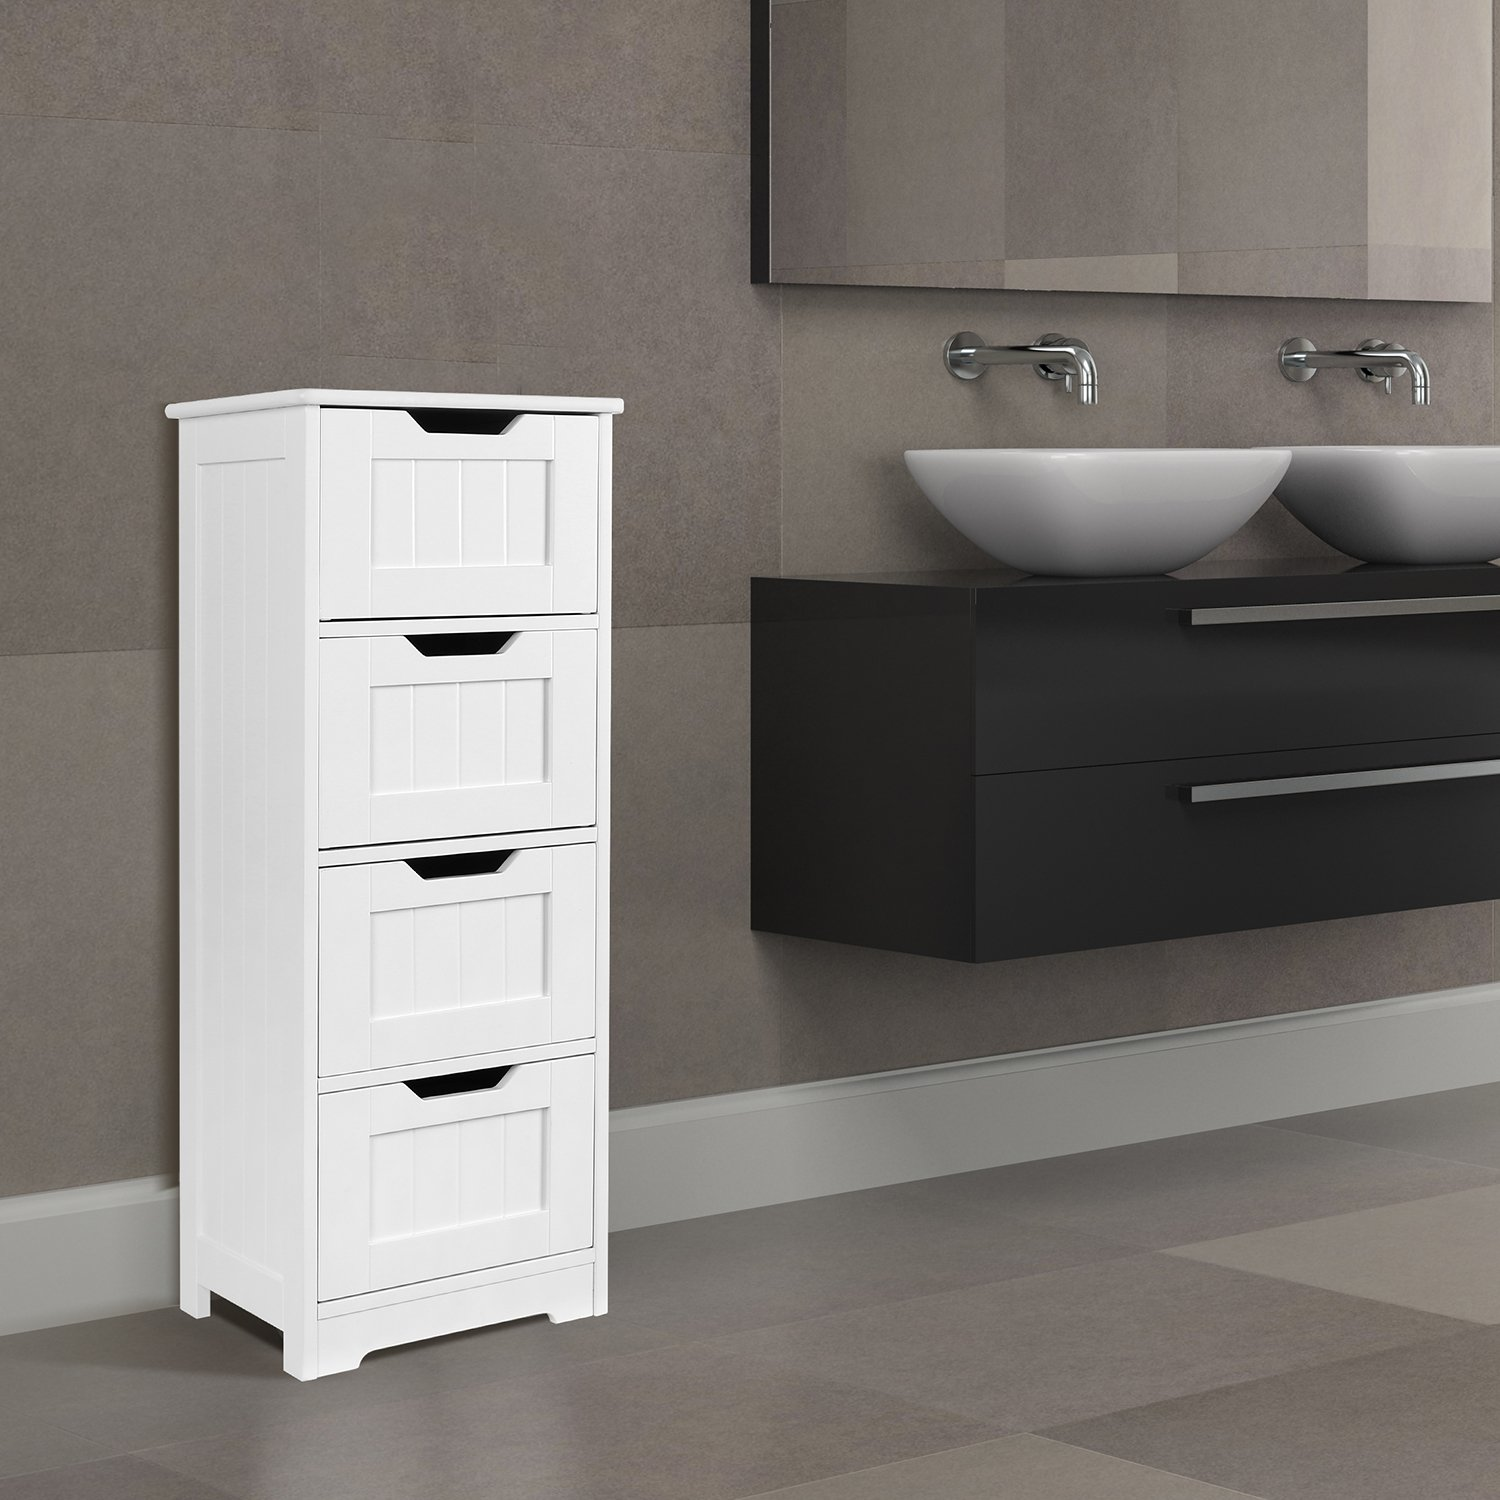 nouveau armoire blanche chambre. Black Bedroom Furniture Sets. Home Design Ideas